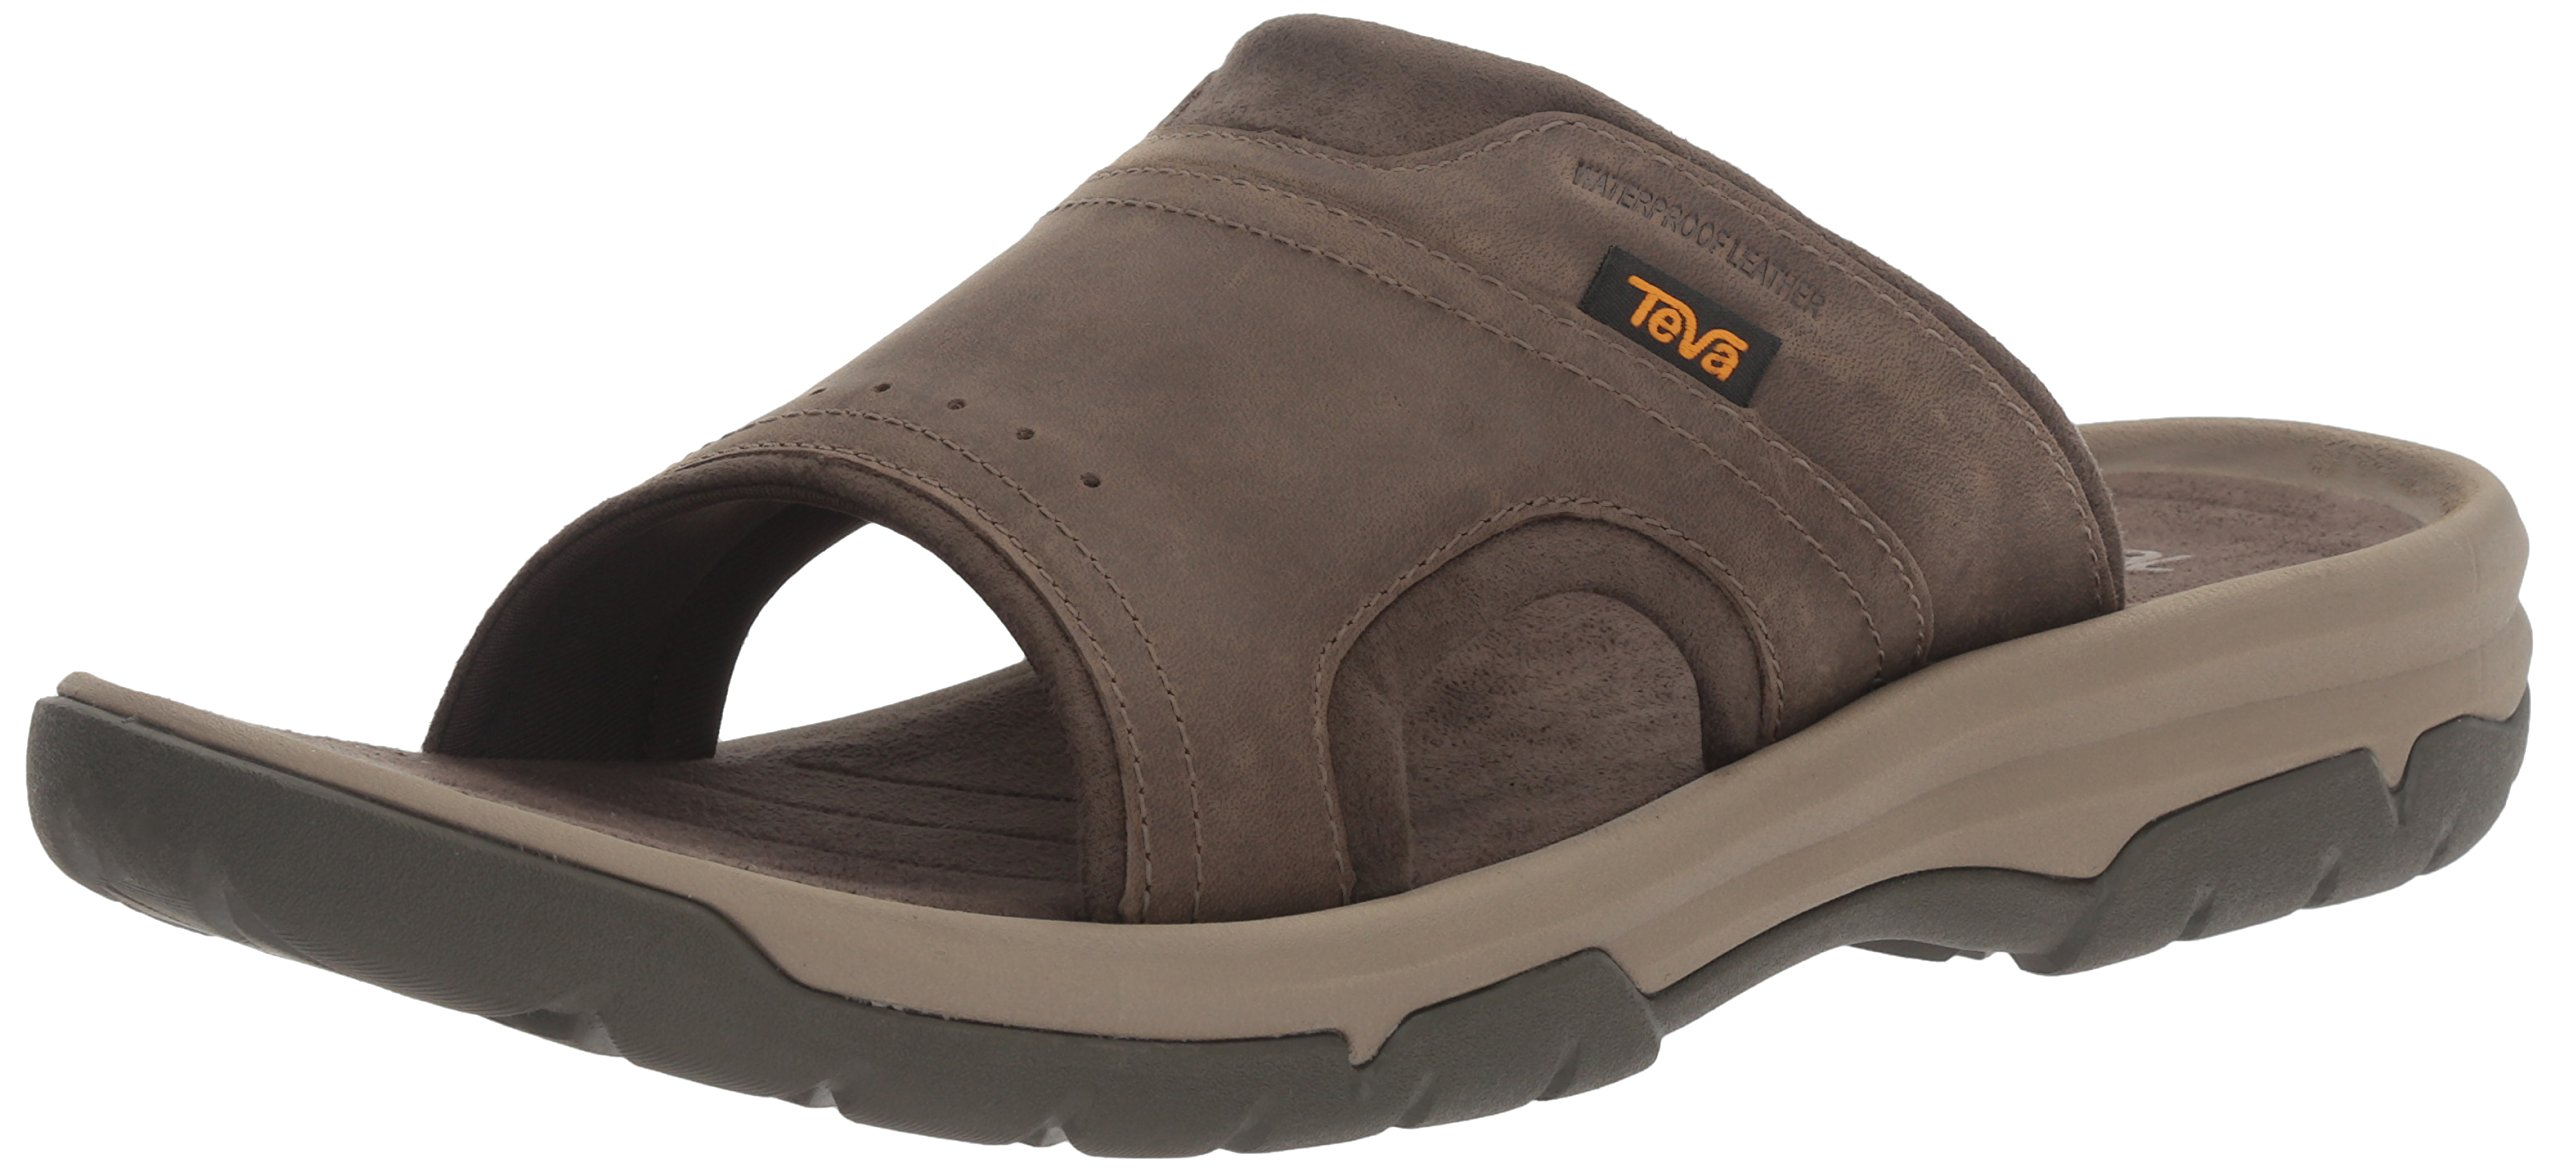 Teva Men's M Langdon Slide Sandal, Walnut, 11 M US by Teva